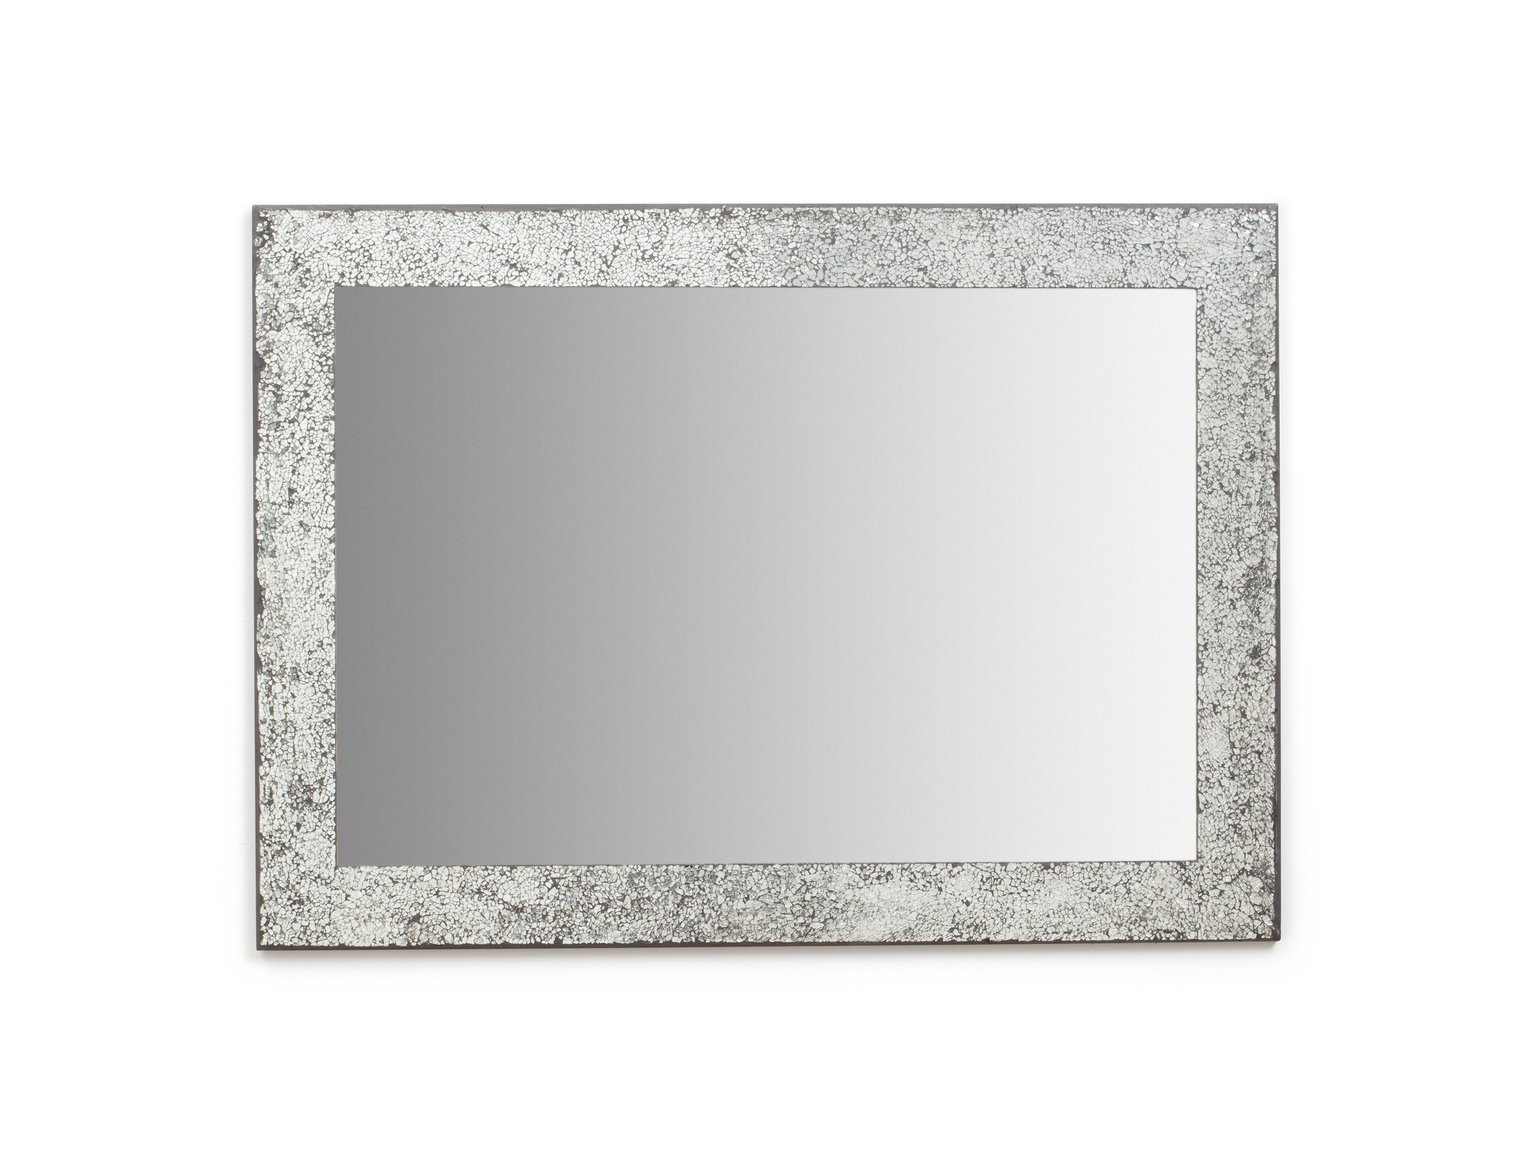 Argos Home India Crackle Glass Wall Mirror - Silver